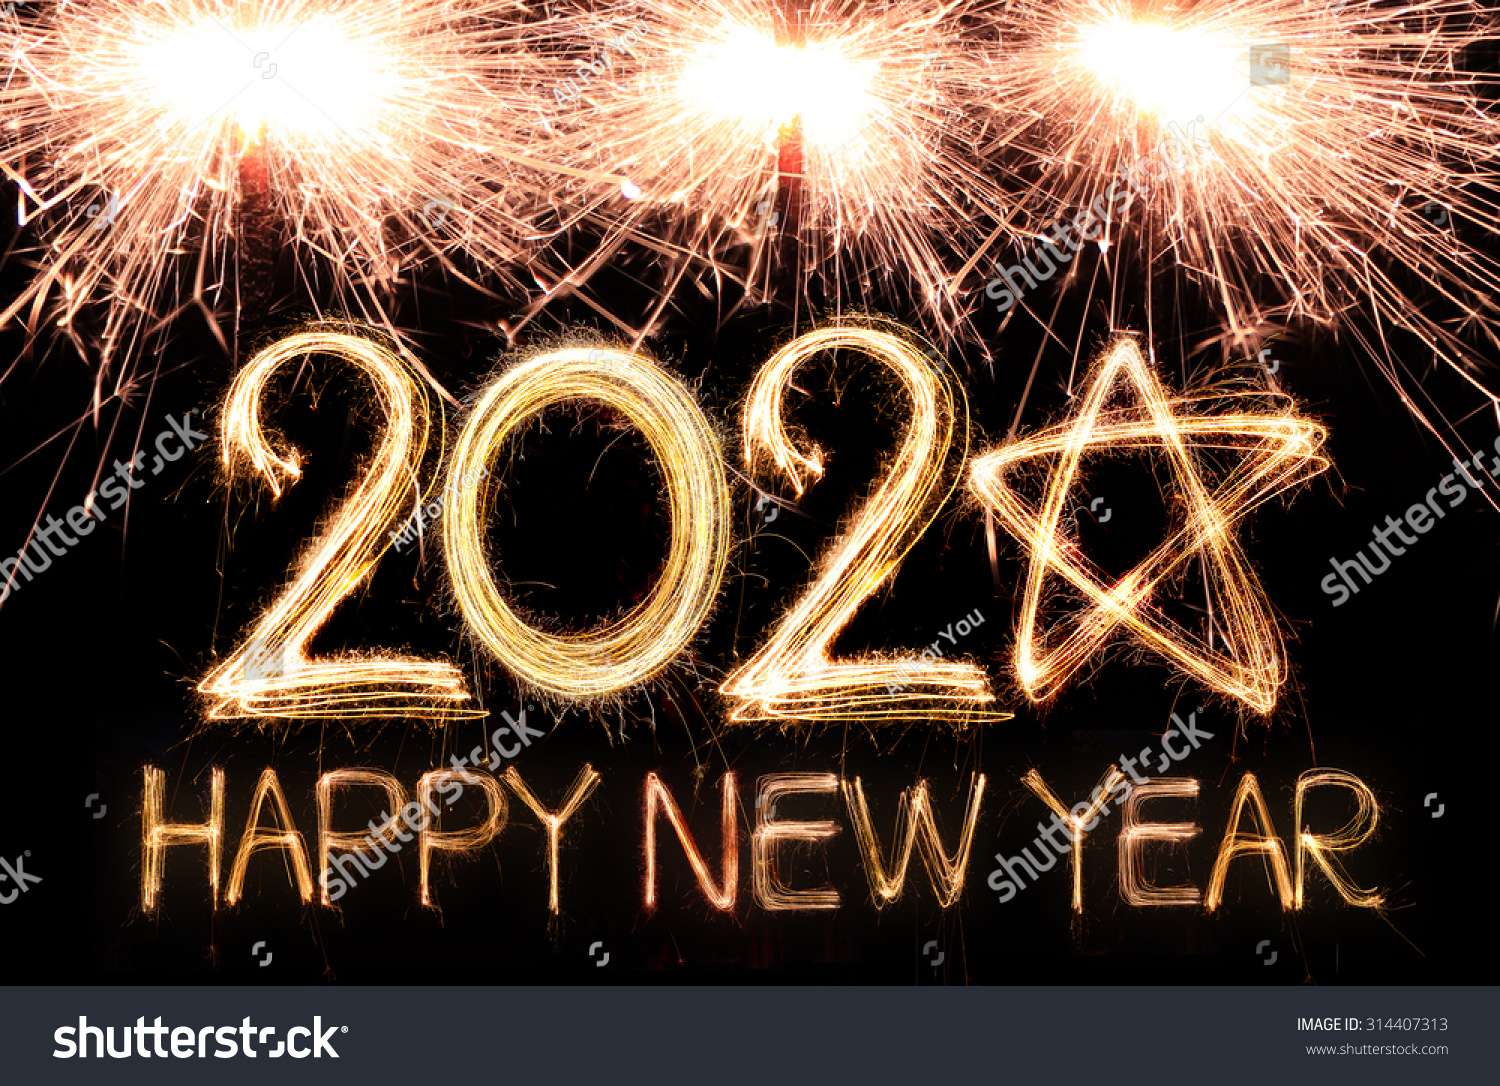 The Best Happy New Year 2020 Date